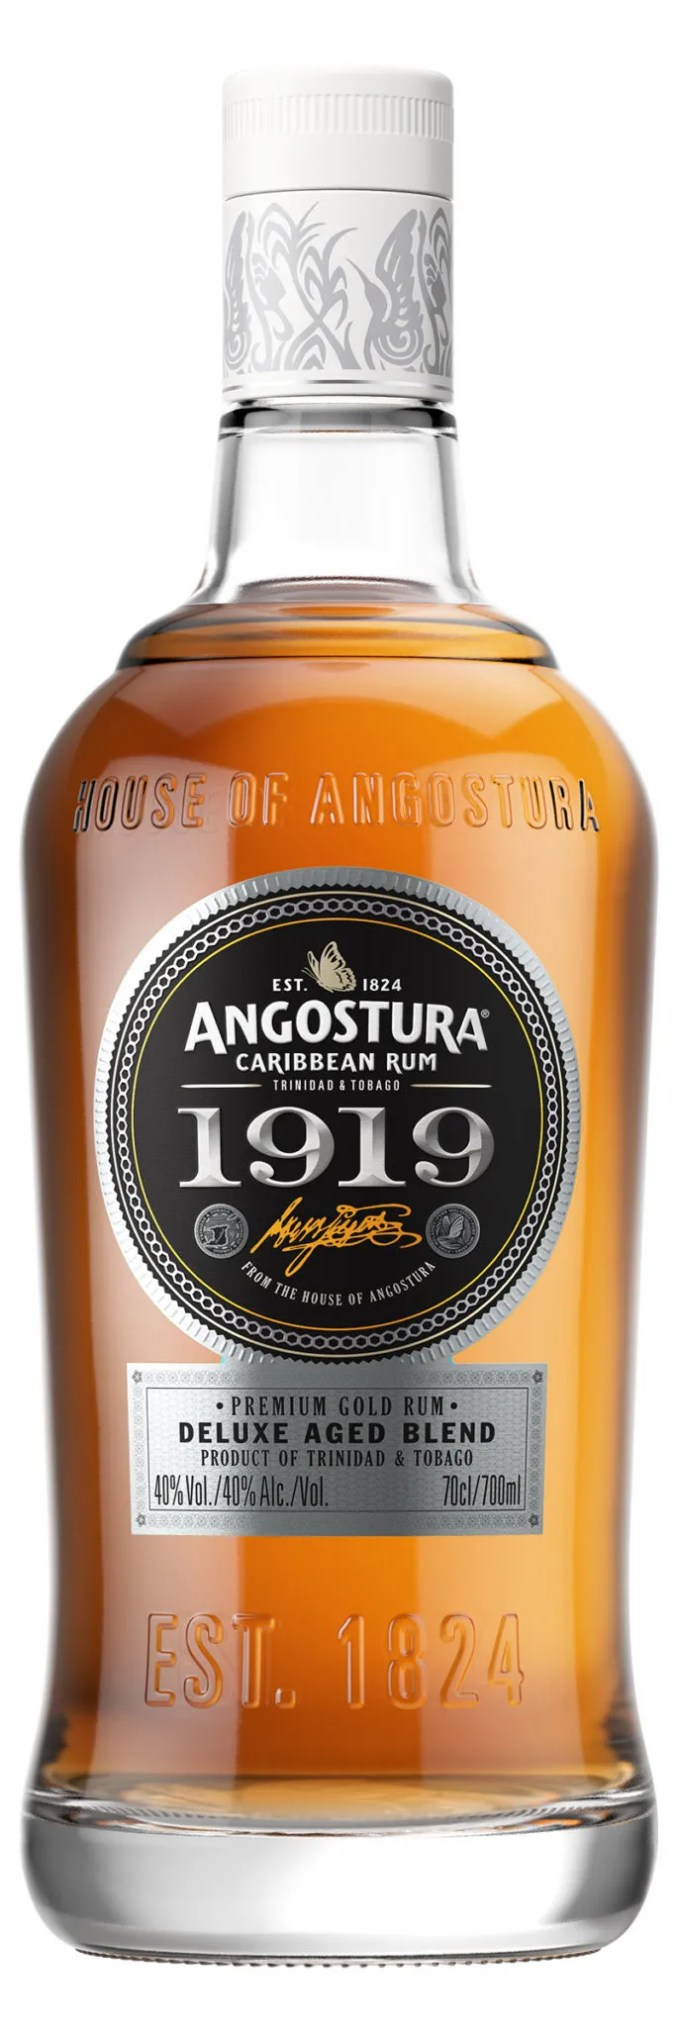 Angostura 1919 aged rum from Trinidad